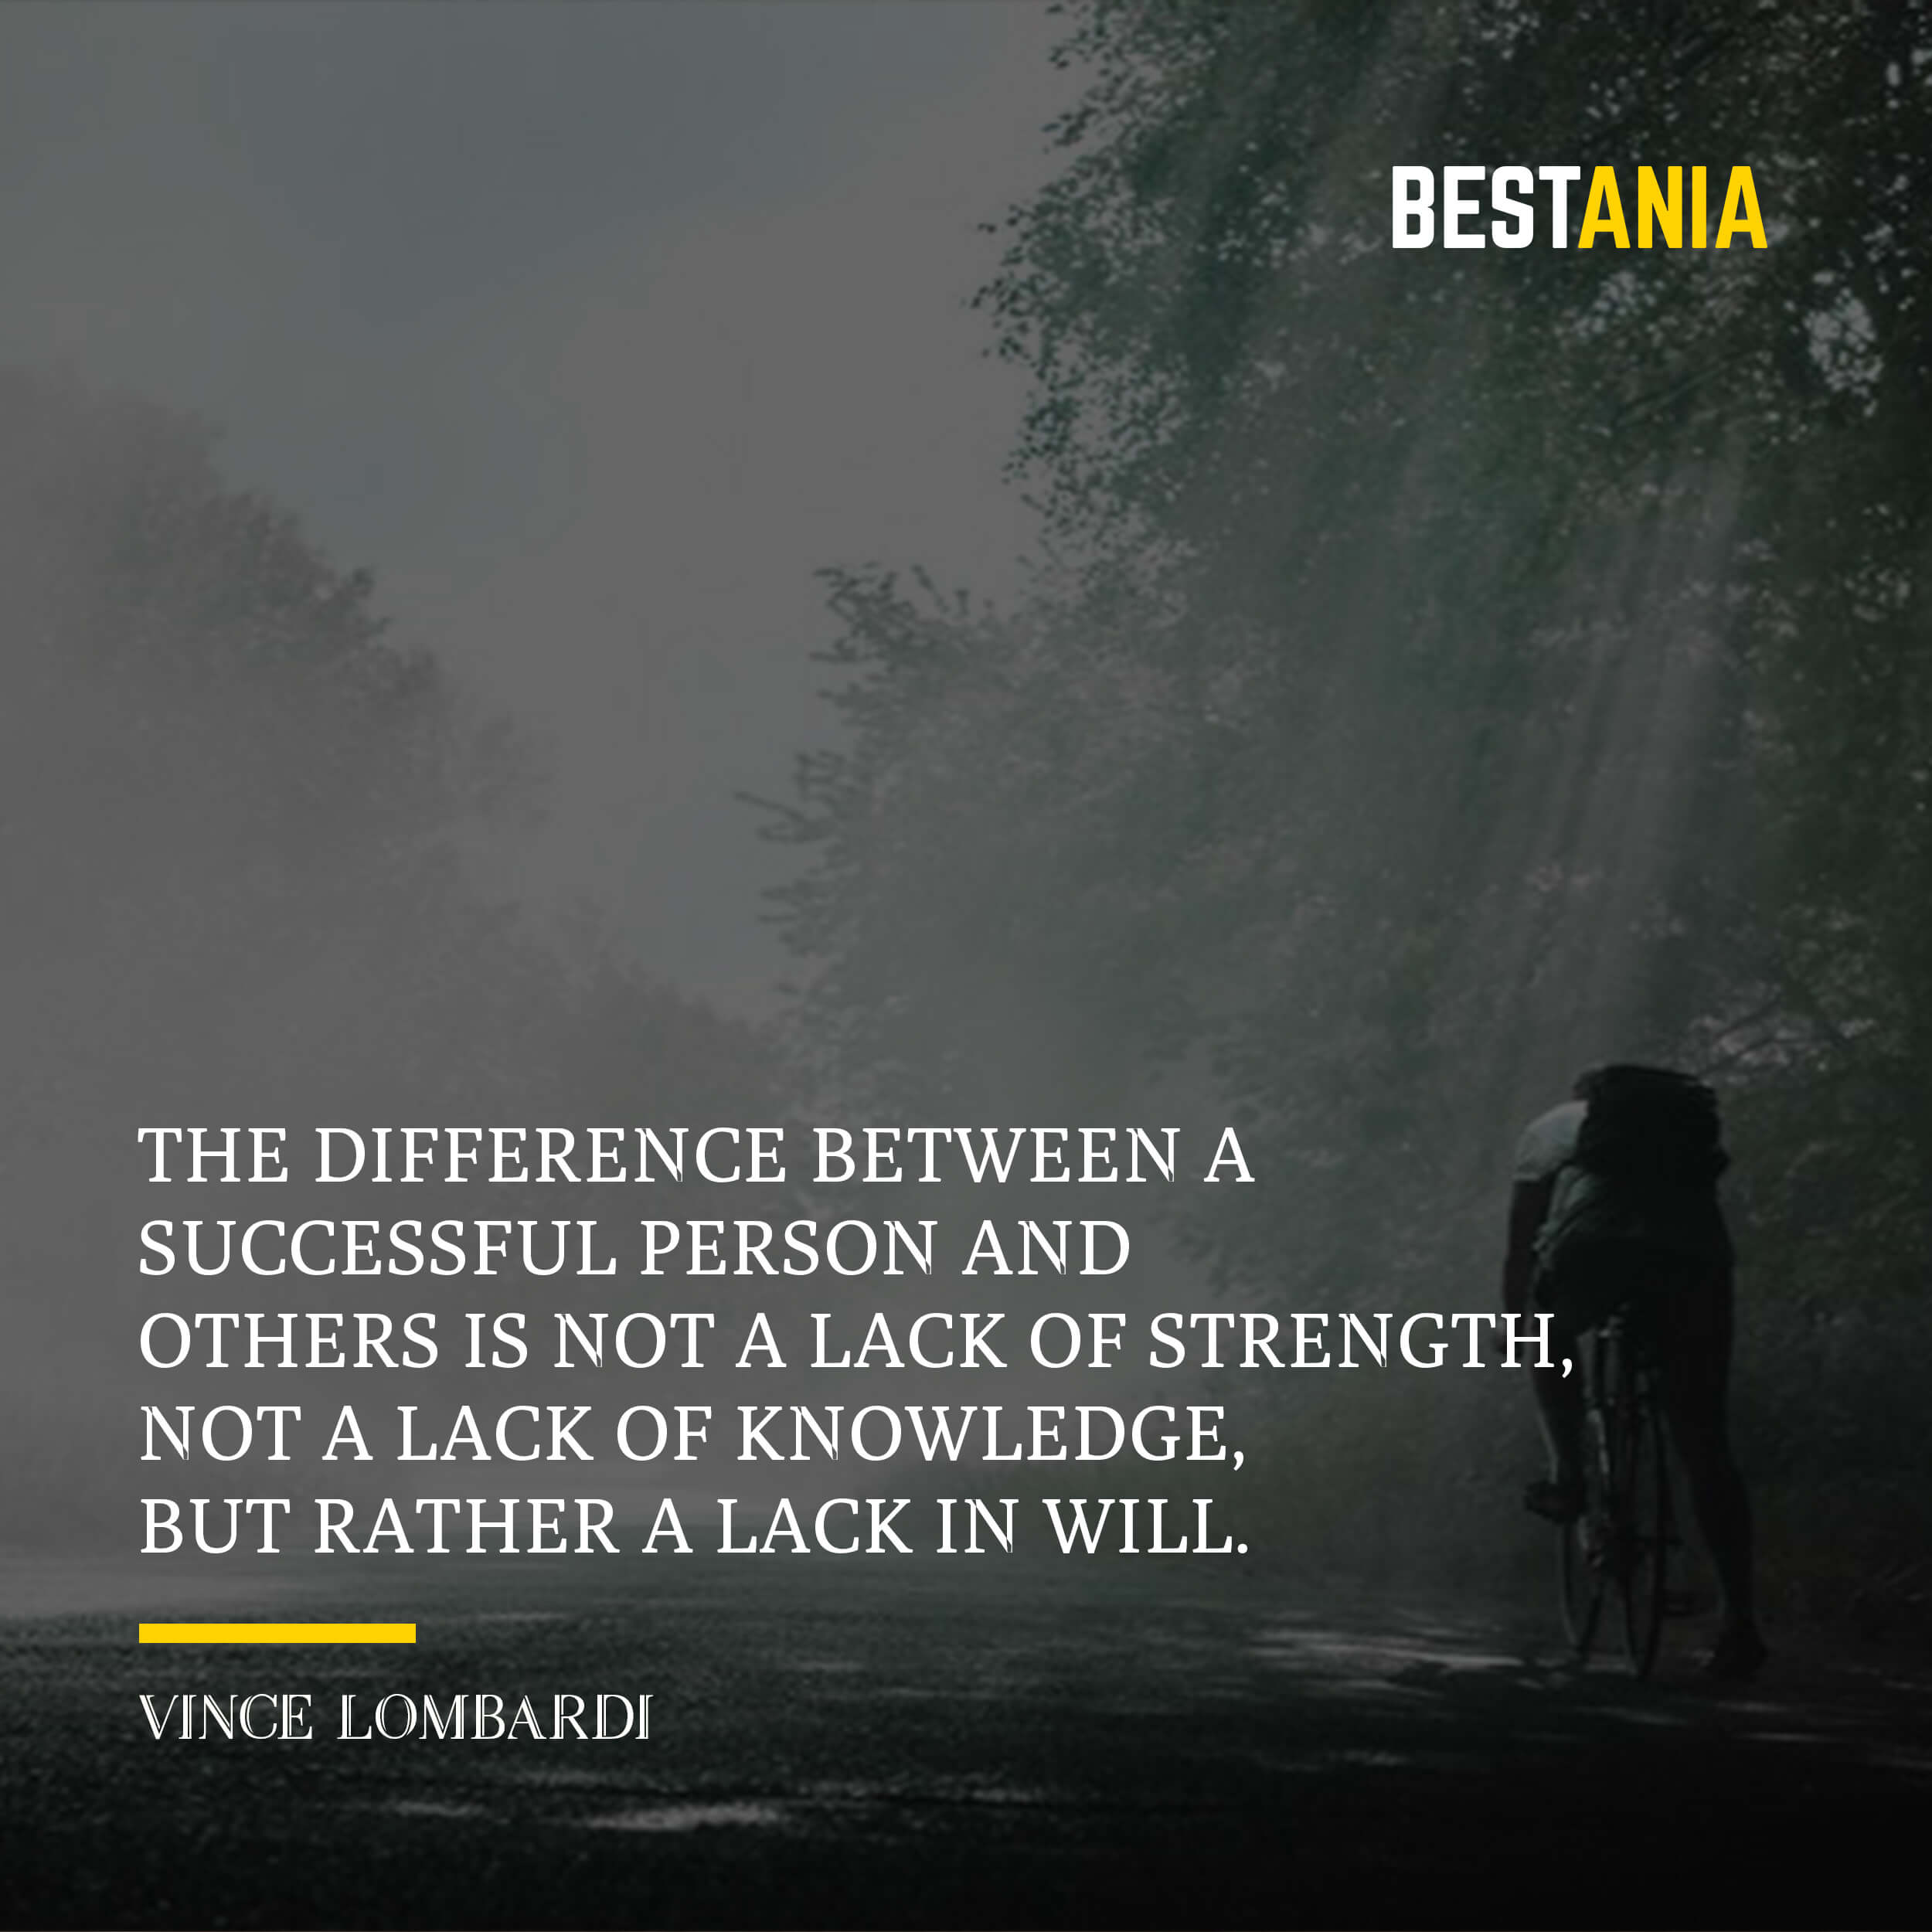 The difference between a successful person and others is not a lack of strength, not a lack of knowledge, but rather a lack in will. – Vince Lombardi